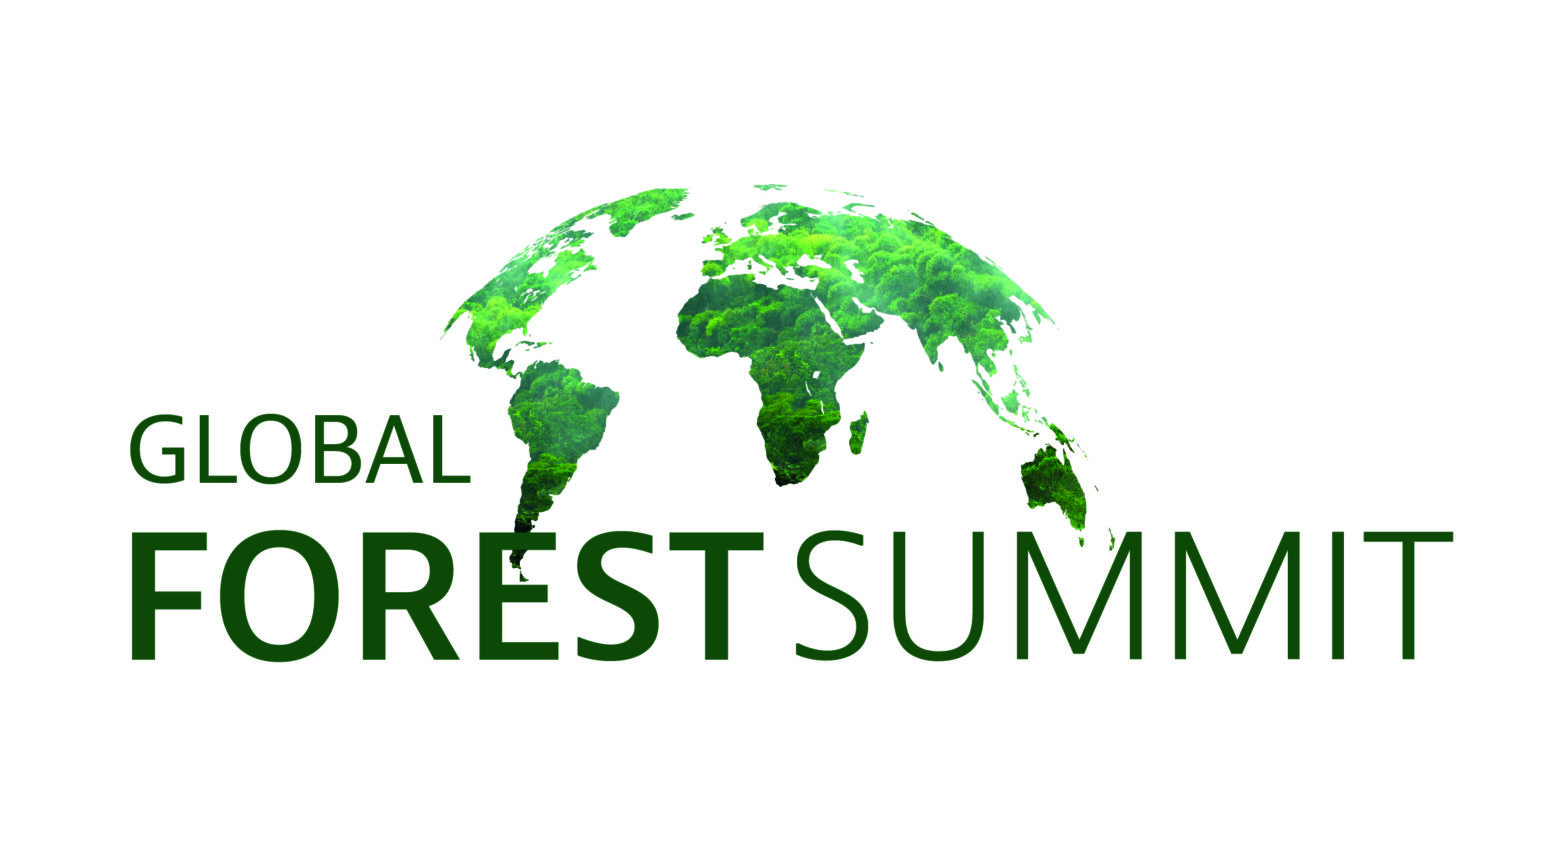 GLOBAL FOREST SUMMIT